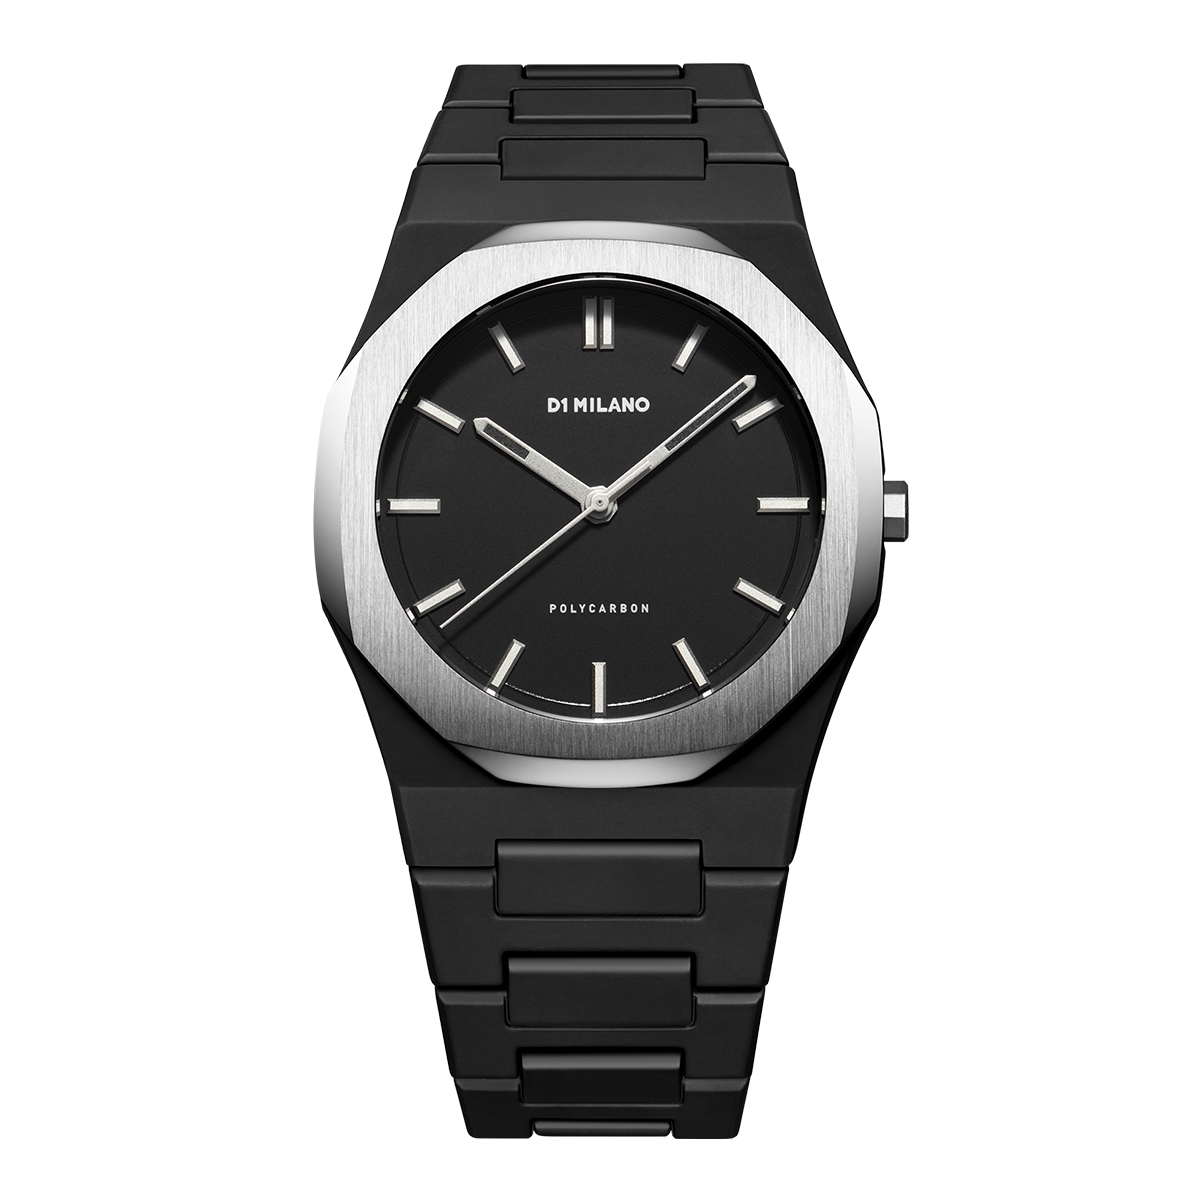 D1 MILANO D1 MILANO New Polycarbon Silver Case with Bracelet